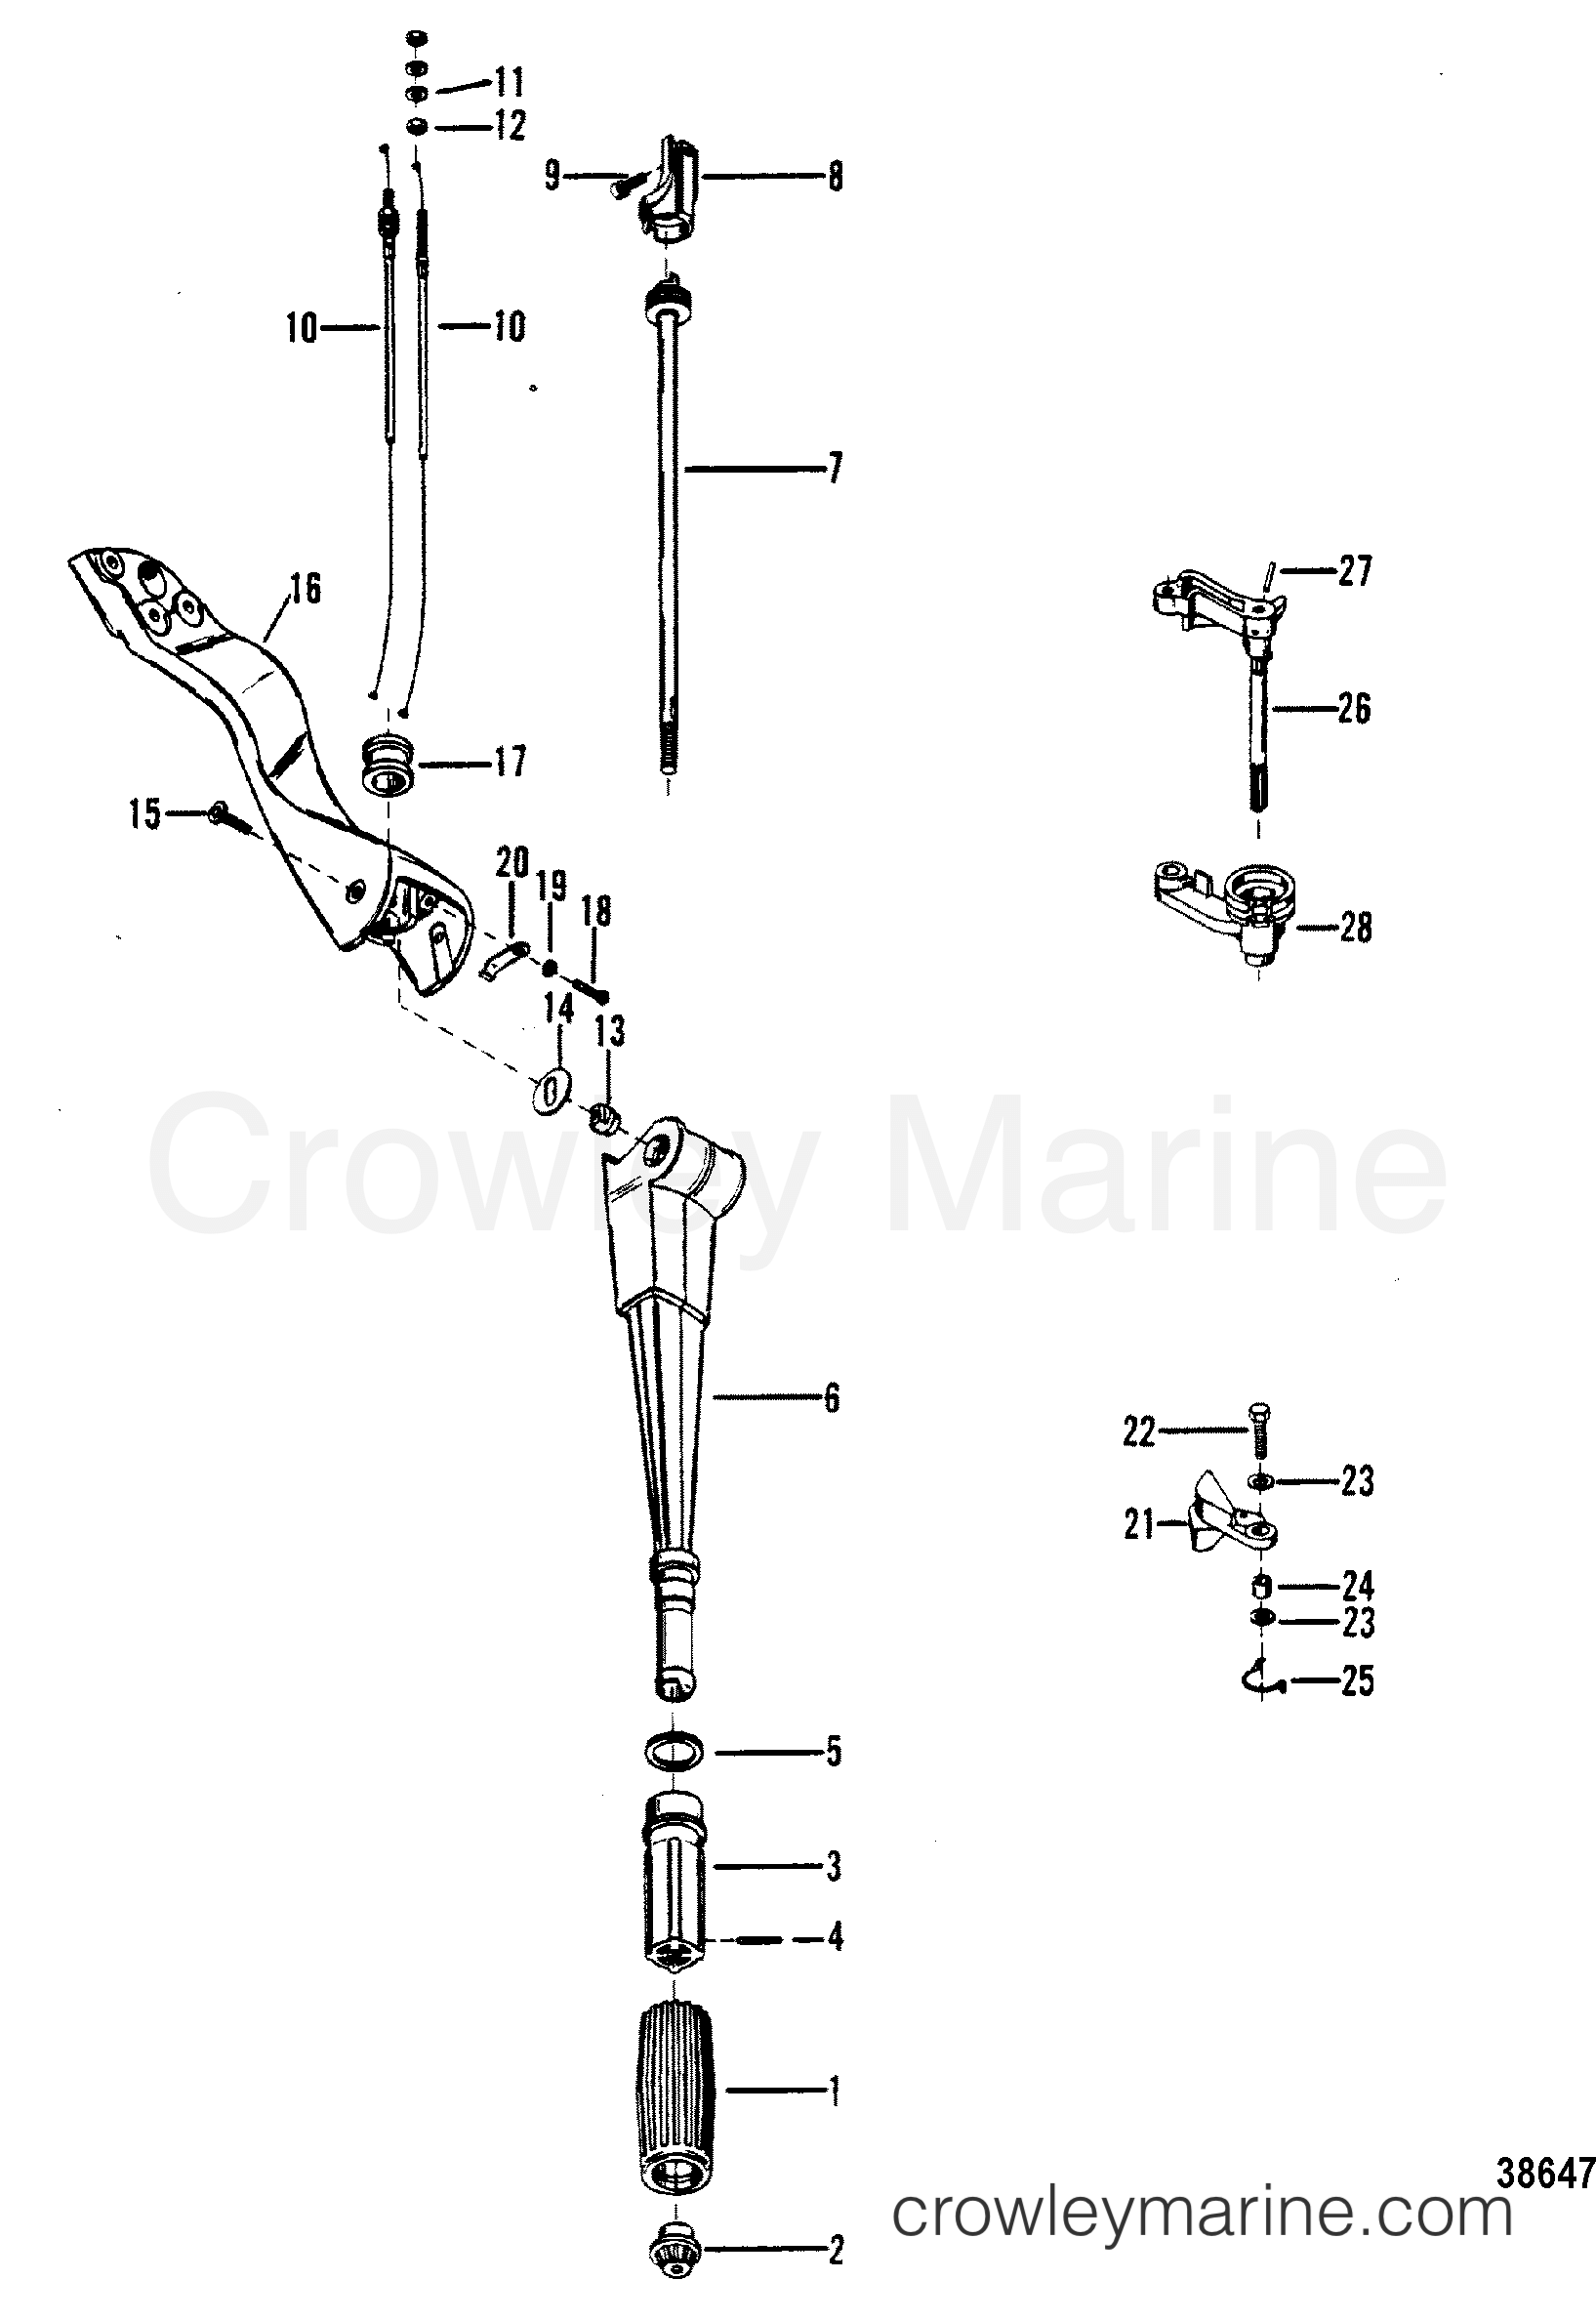 Steering Handle And Throttle Linkage